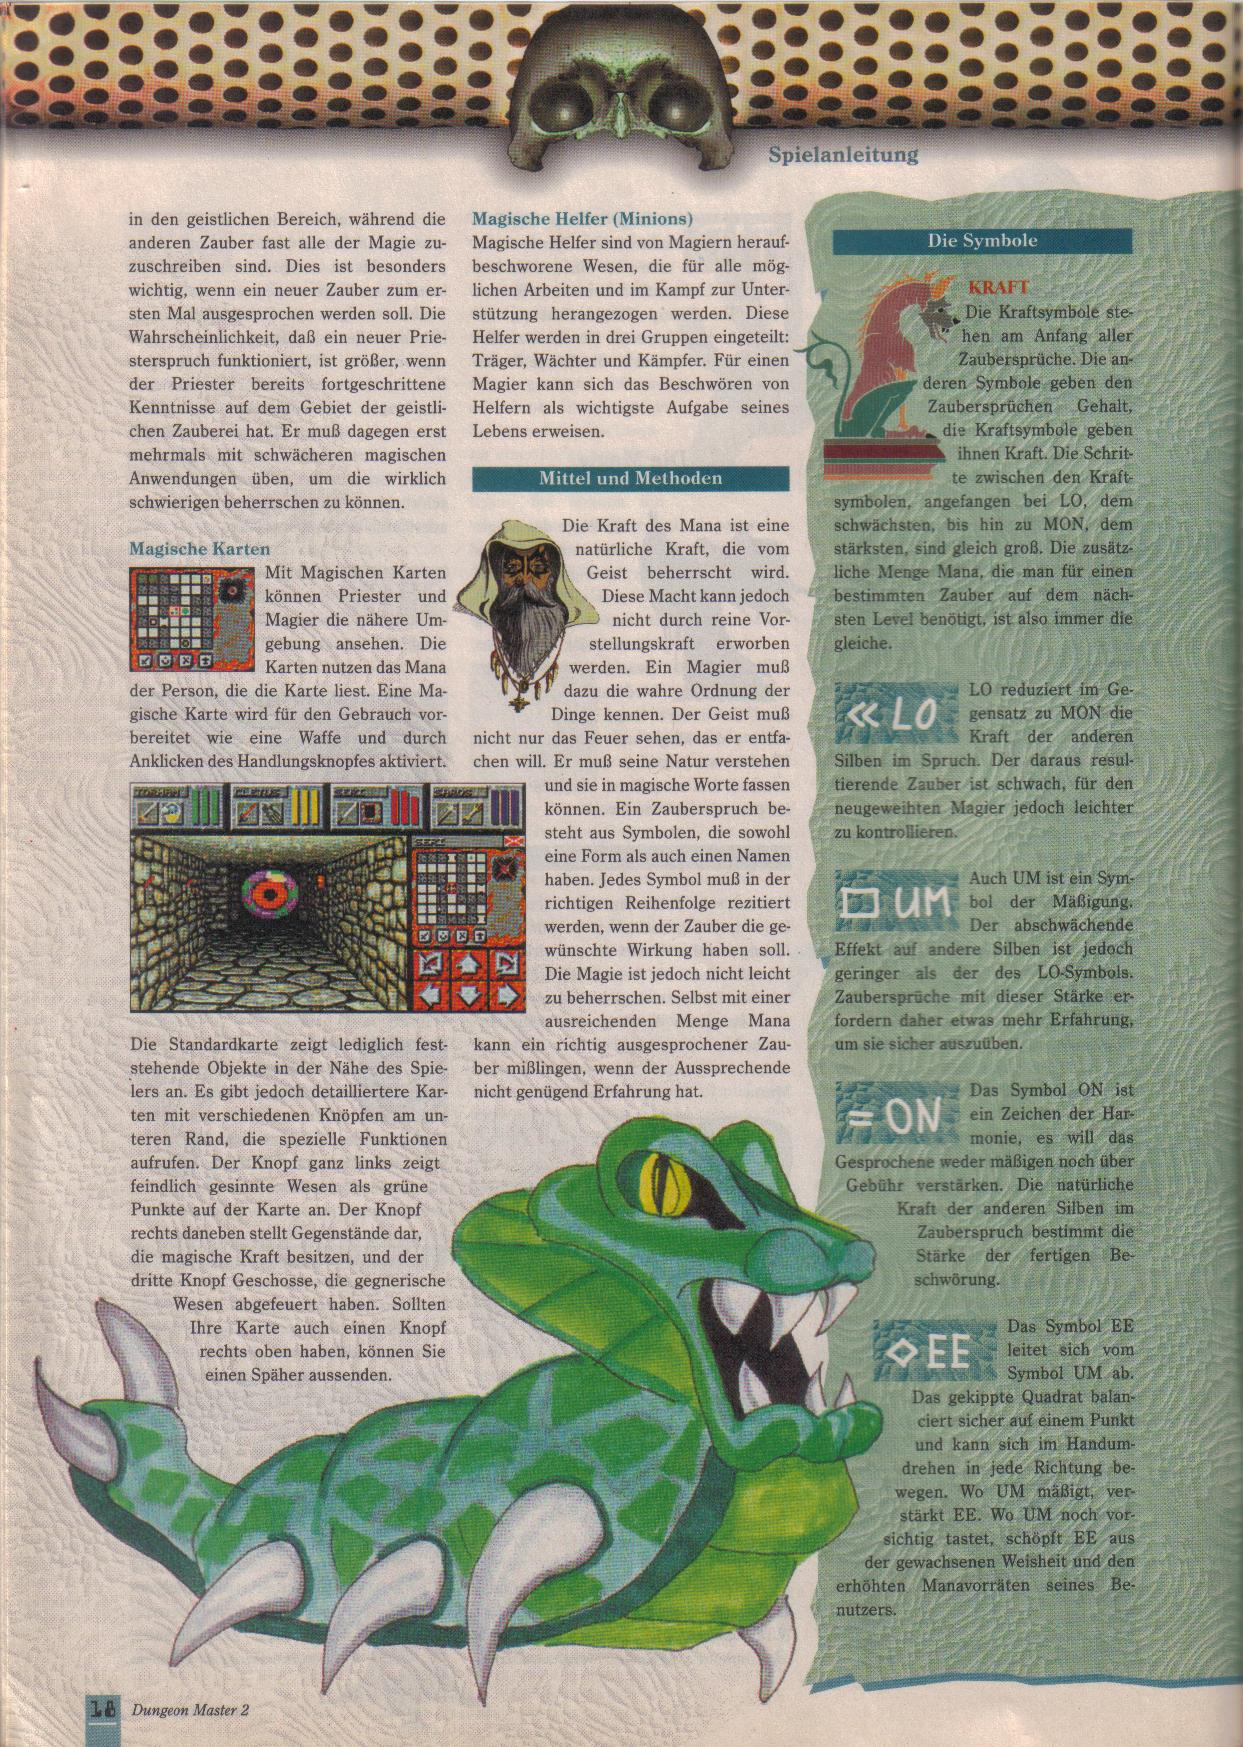 Dungeon Master II for PC (German, Best Seller Games) Page 18